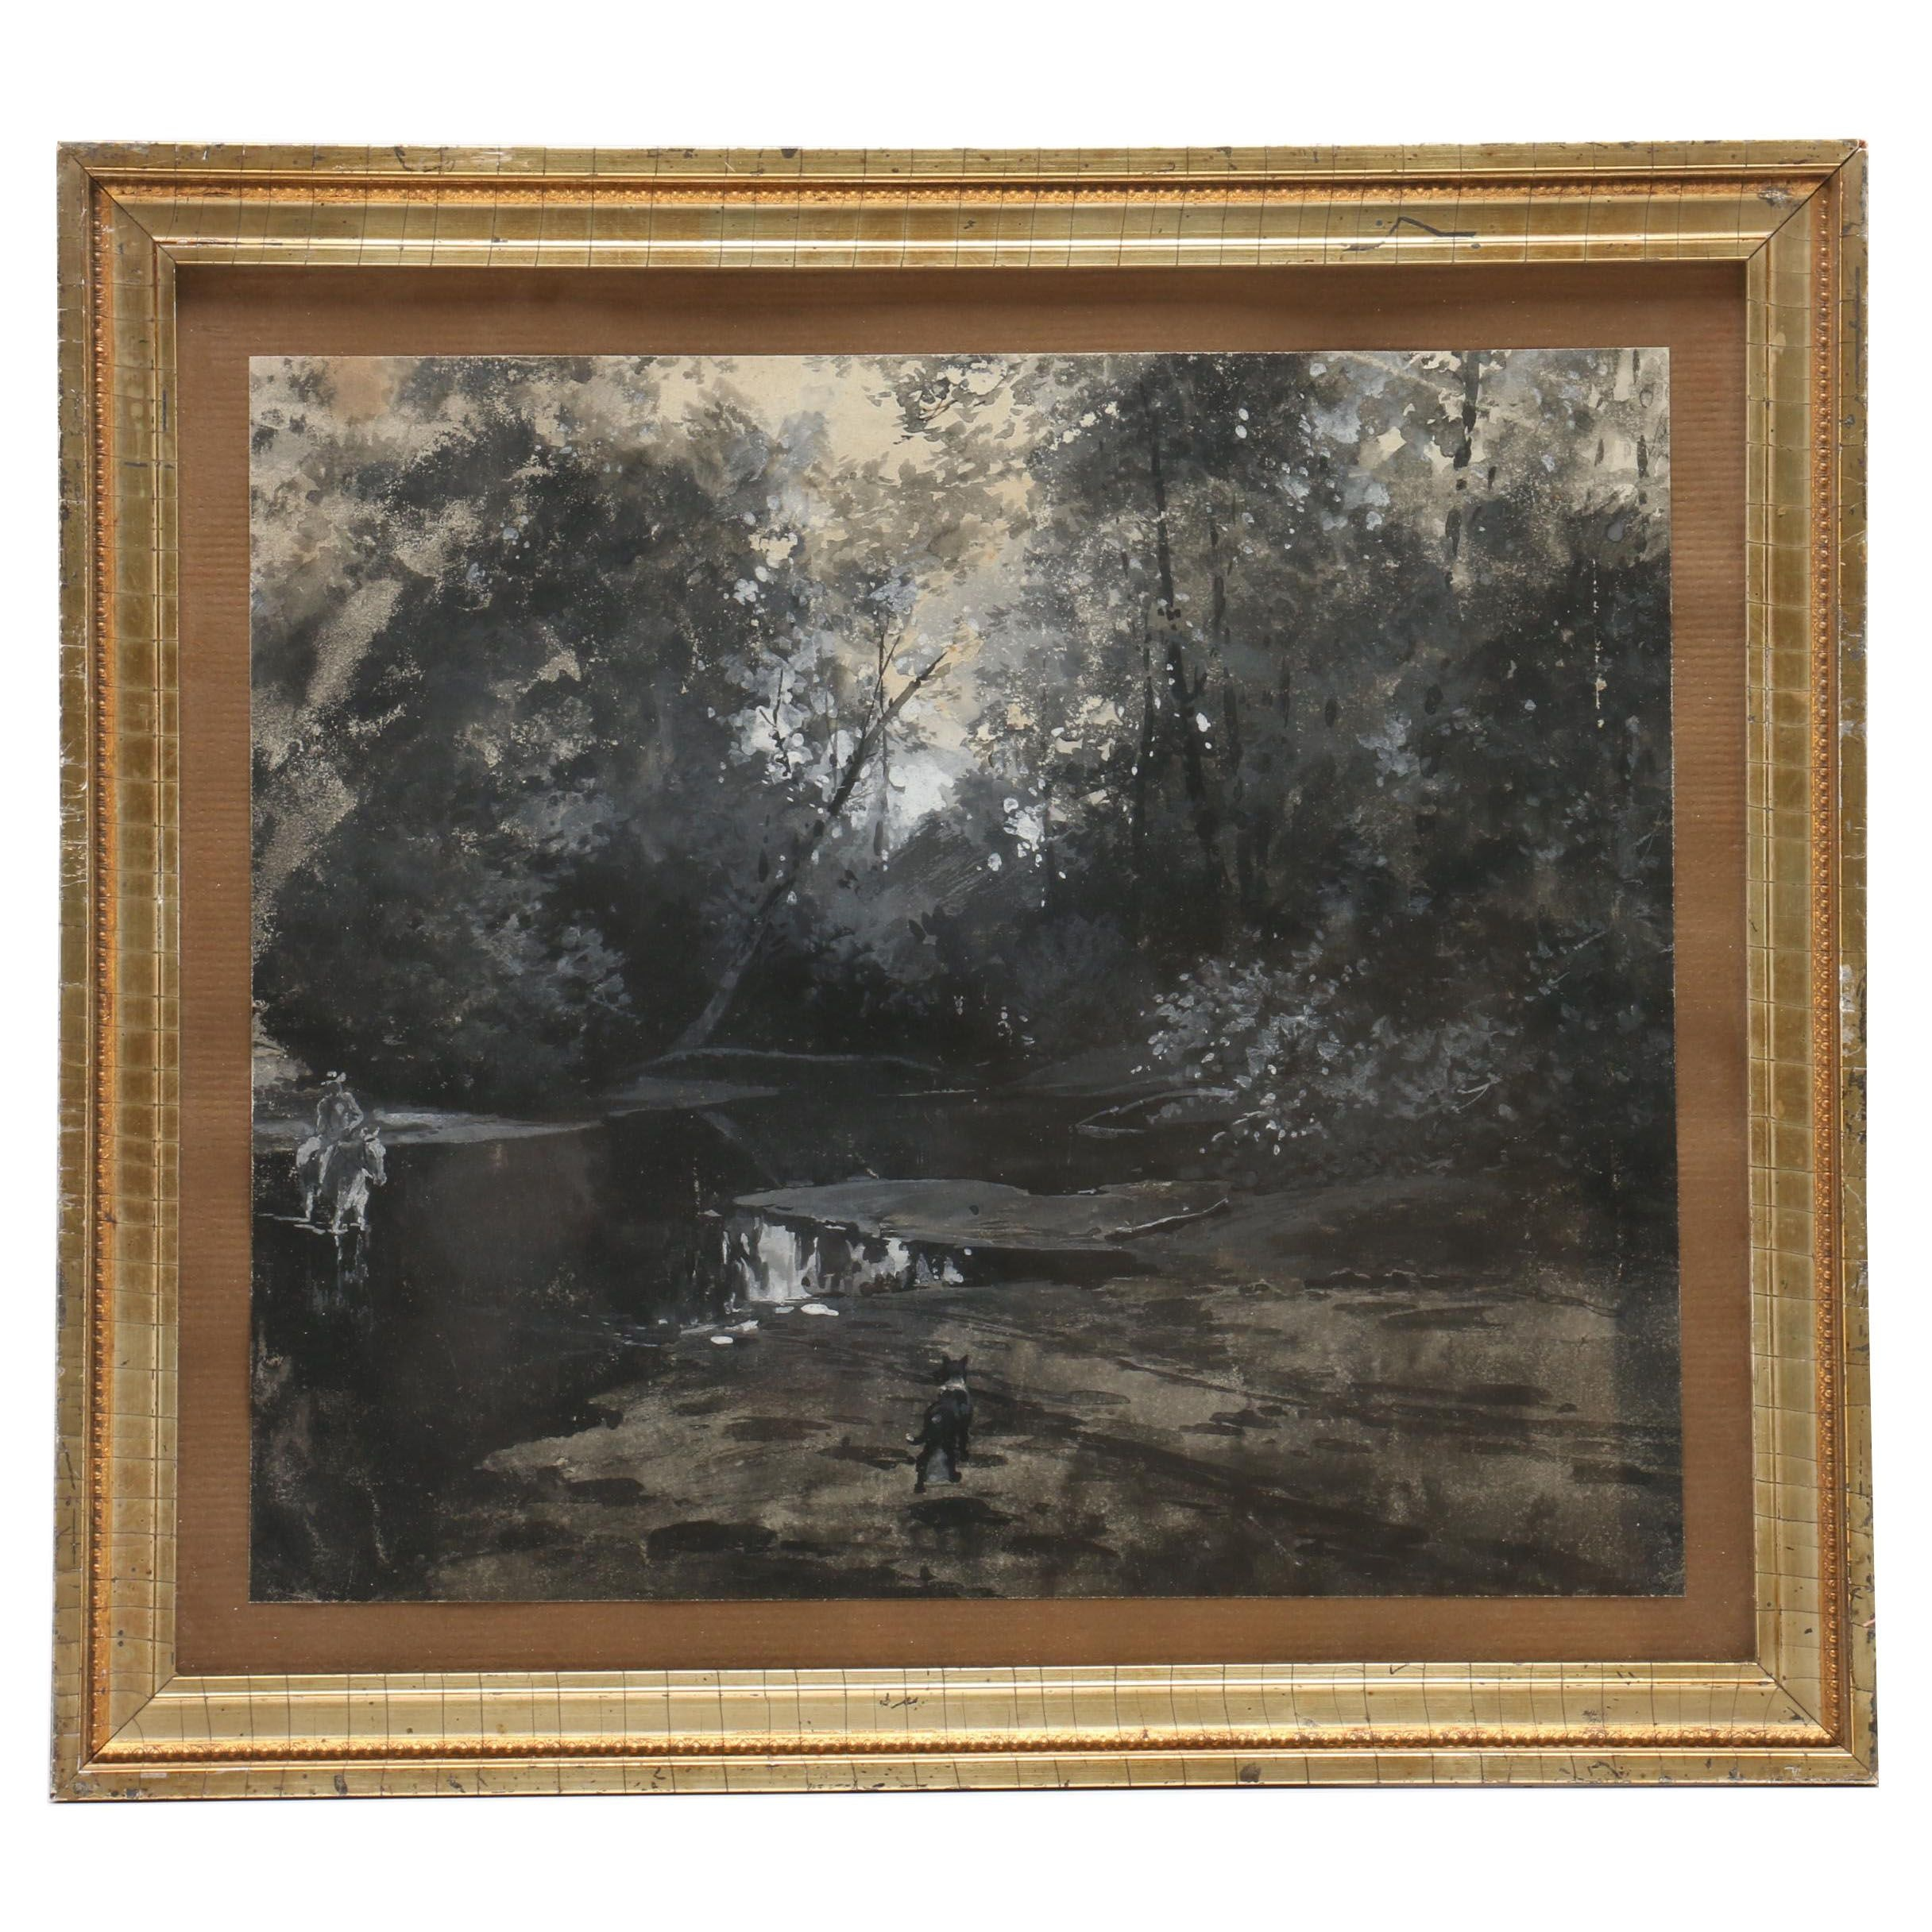 Grayscale Gouache and Watercolor Painting of Man on Horse in Wooded Landscape